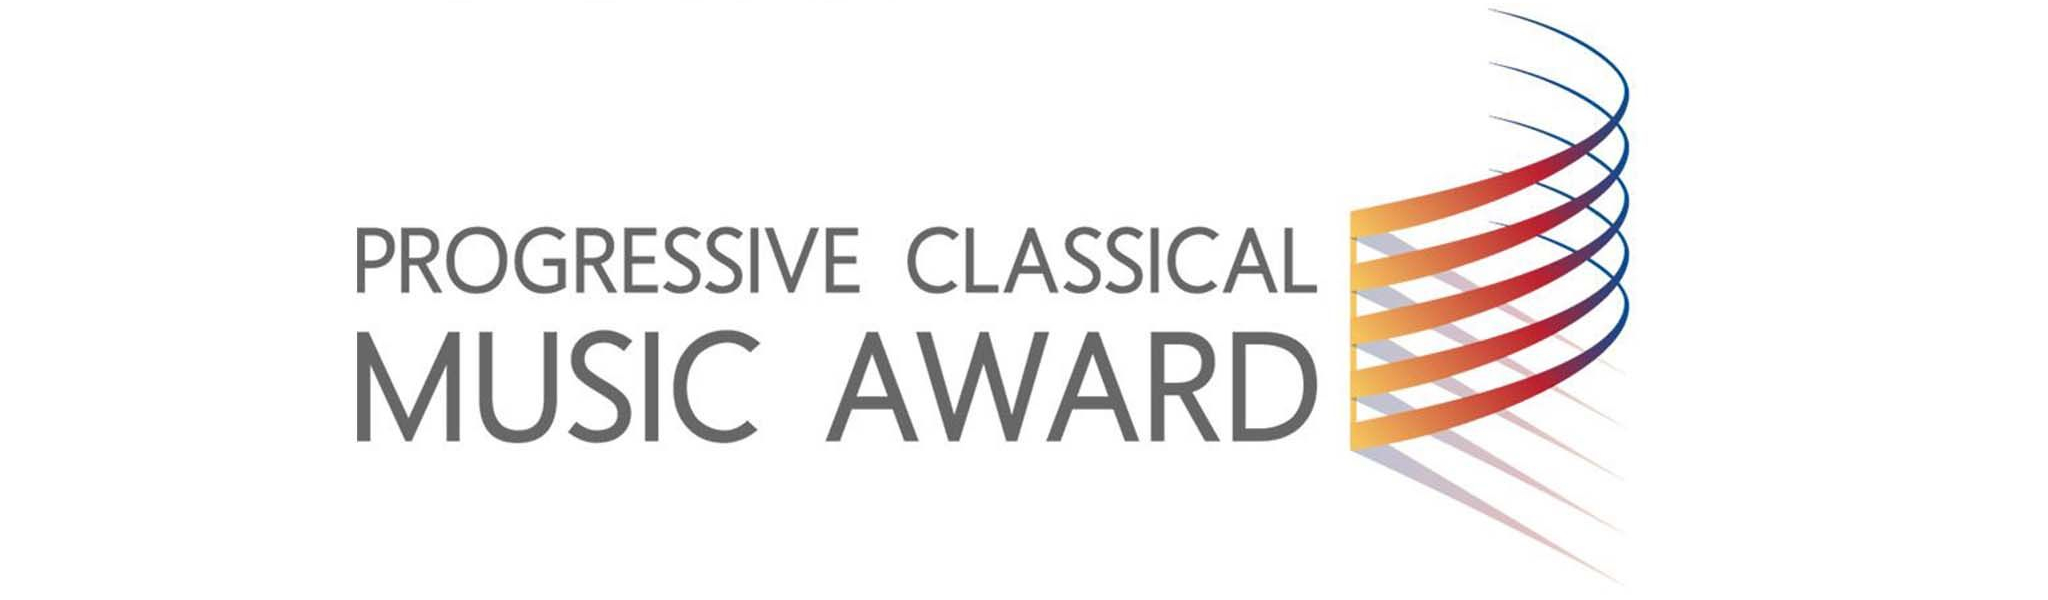 Progressive Classical Music Award 2019